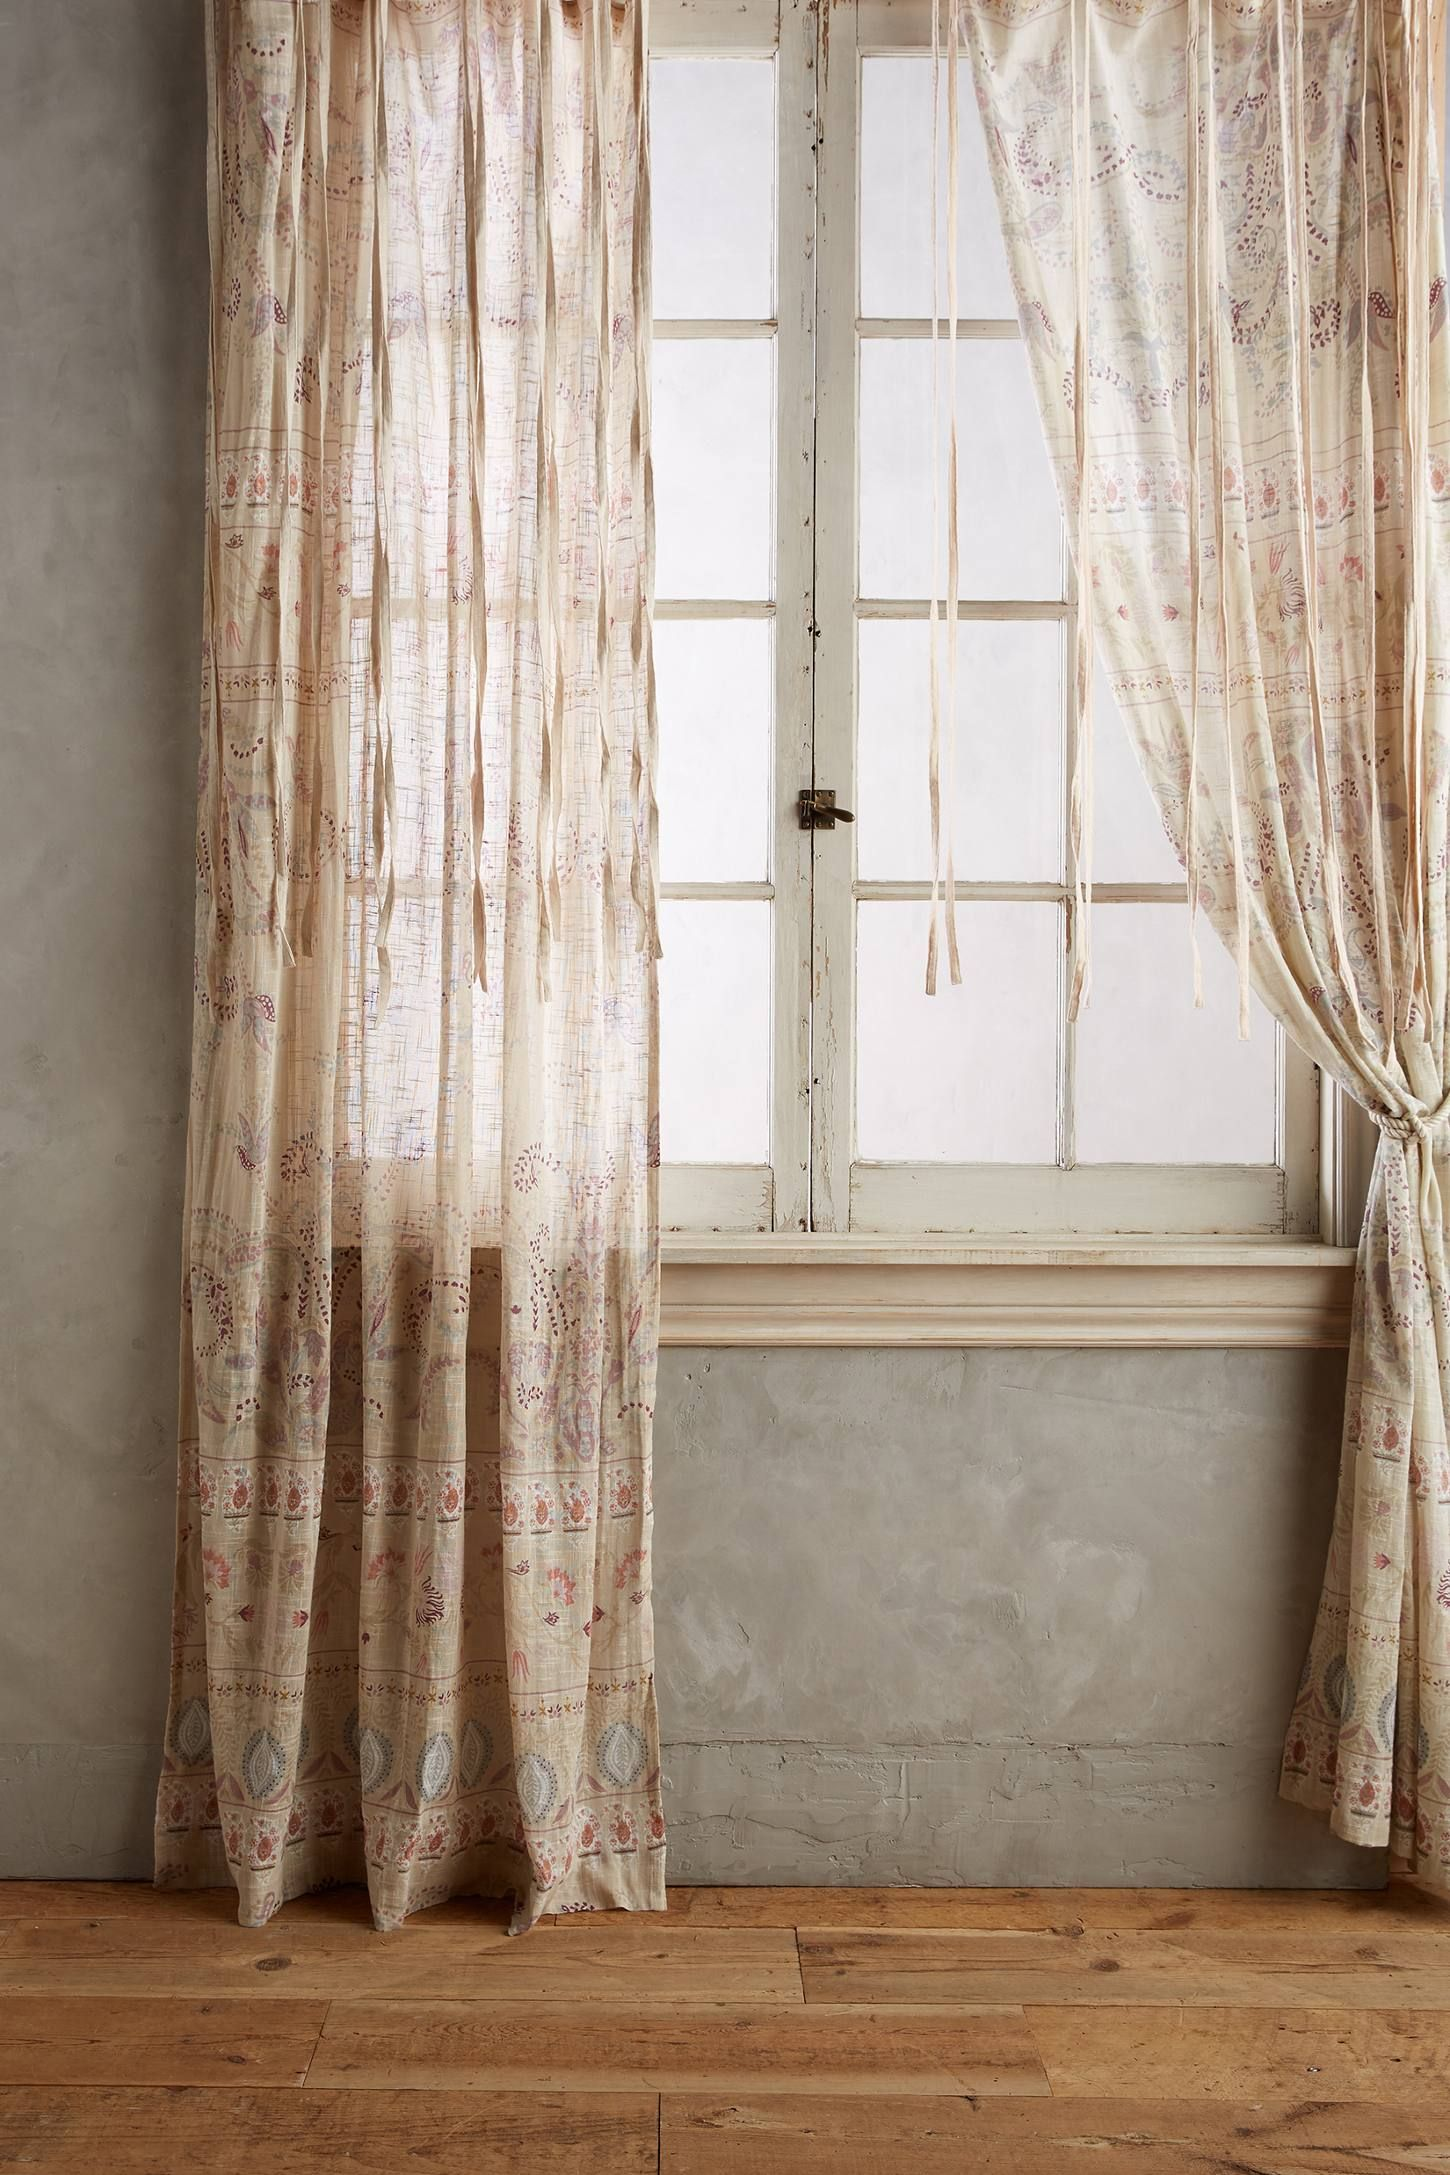 Smithery Curtain Rod Curtains Home Decor Home Decor